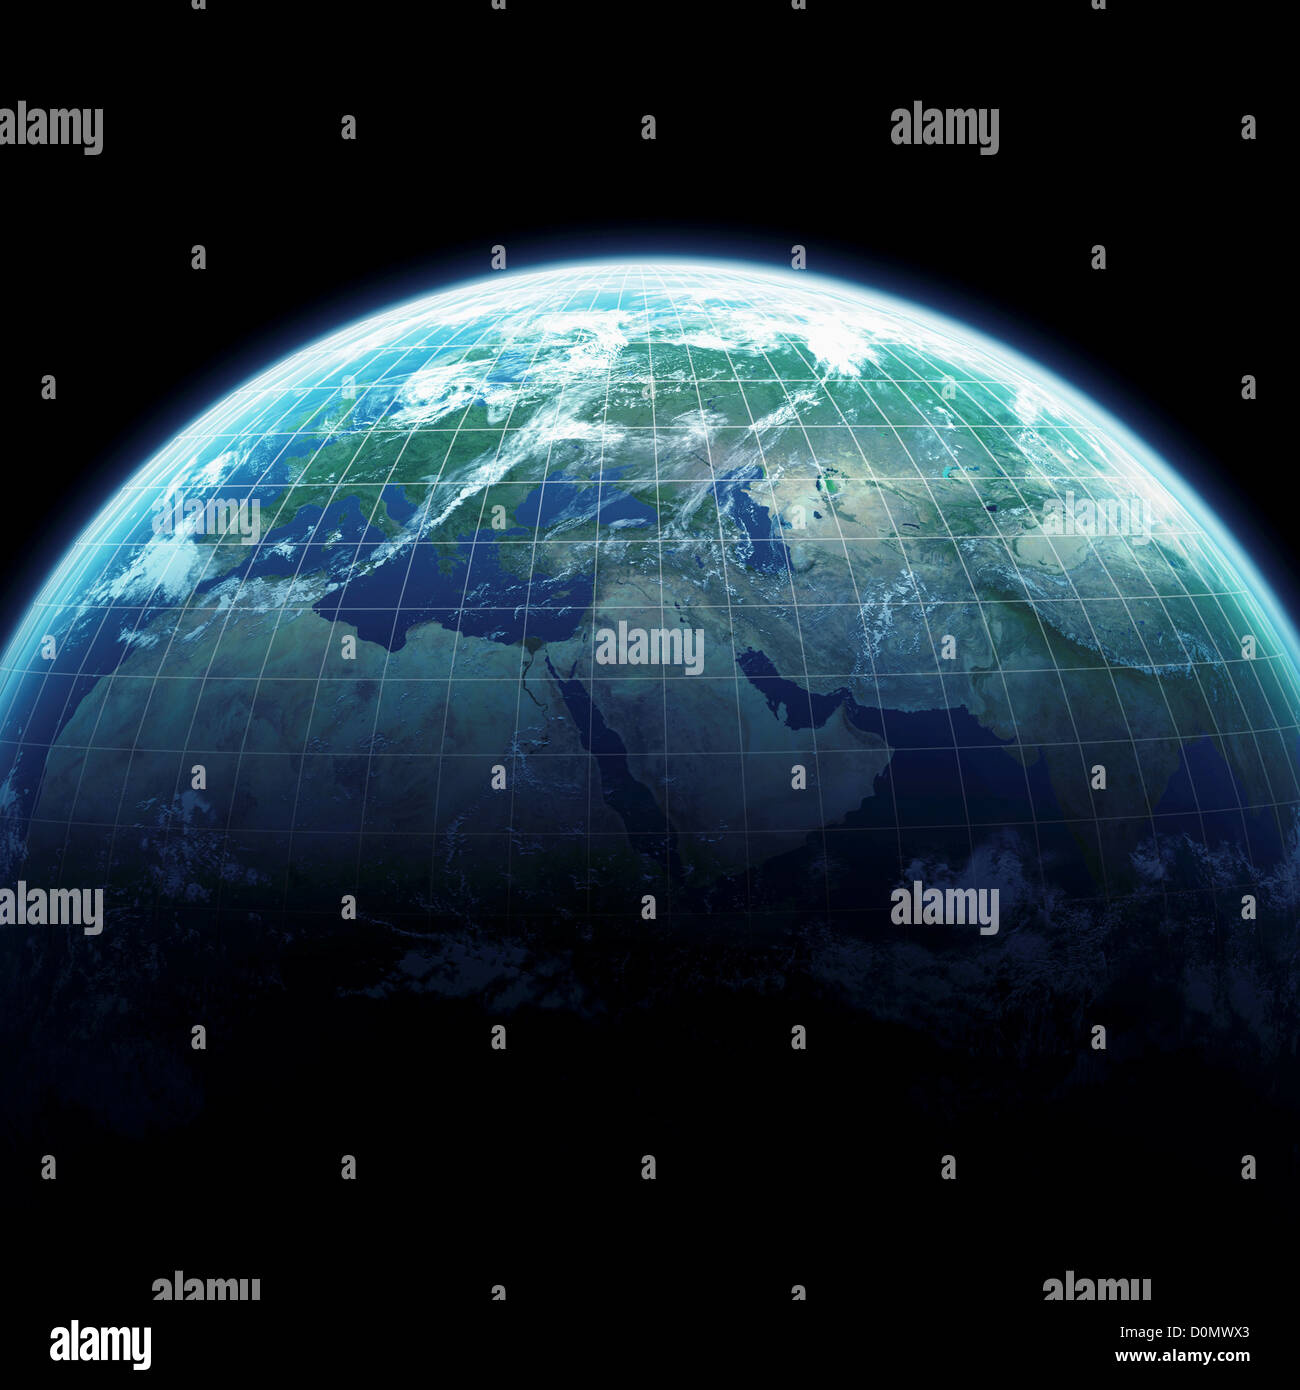 Curvature Of The Earth Stock Photos & Curvature Of The Earth Stock ...